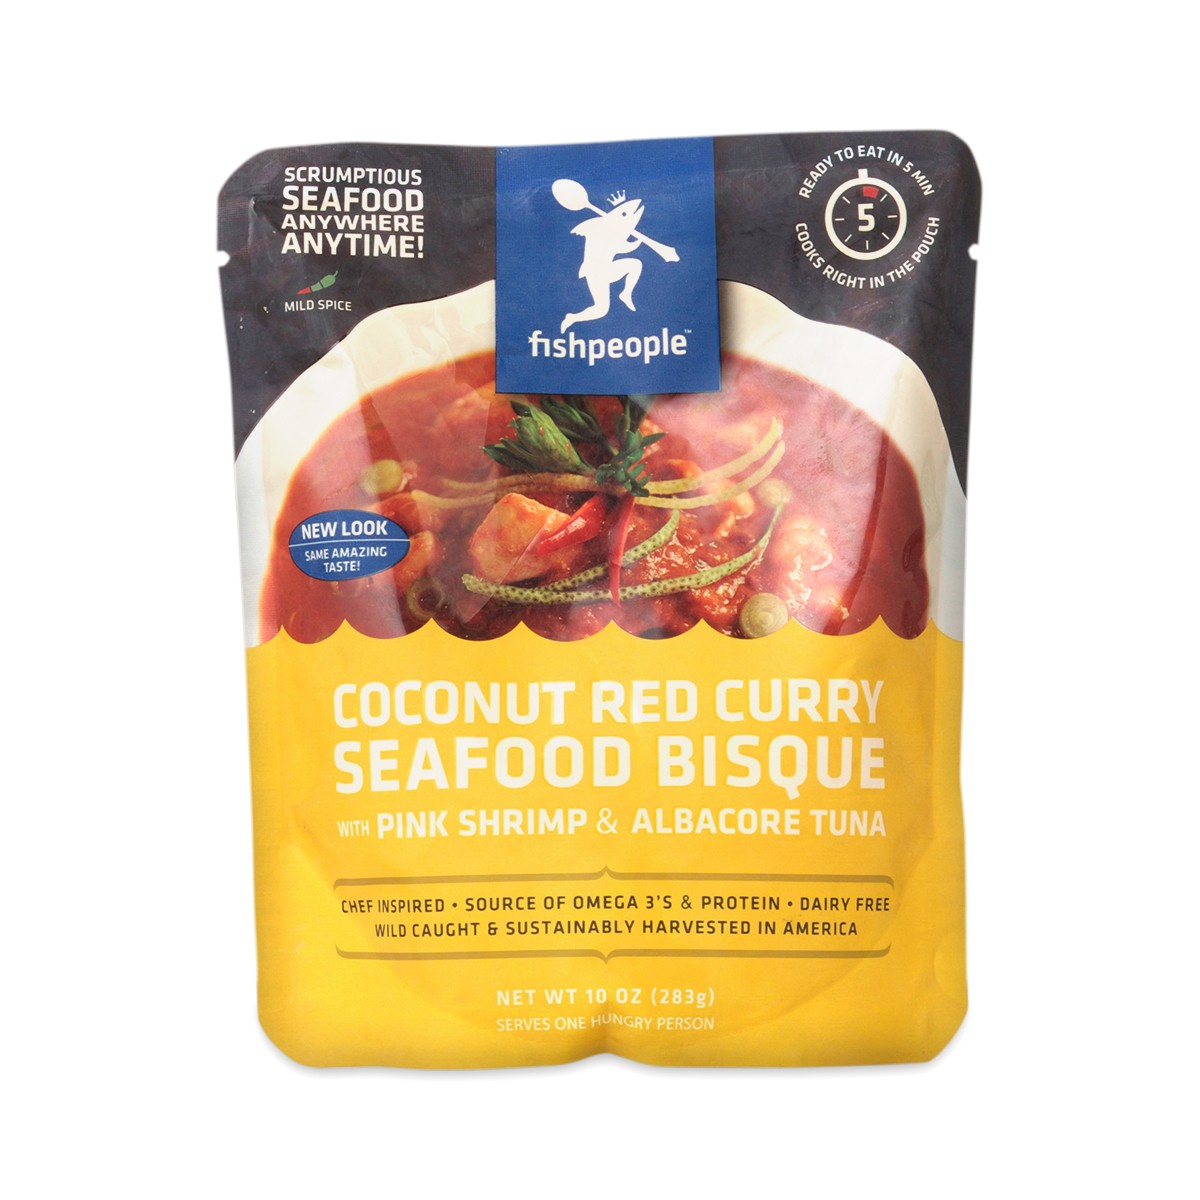 10 oz Coconut Red Curry Seafood Bisque by Fishpeople - Thrive Market